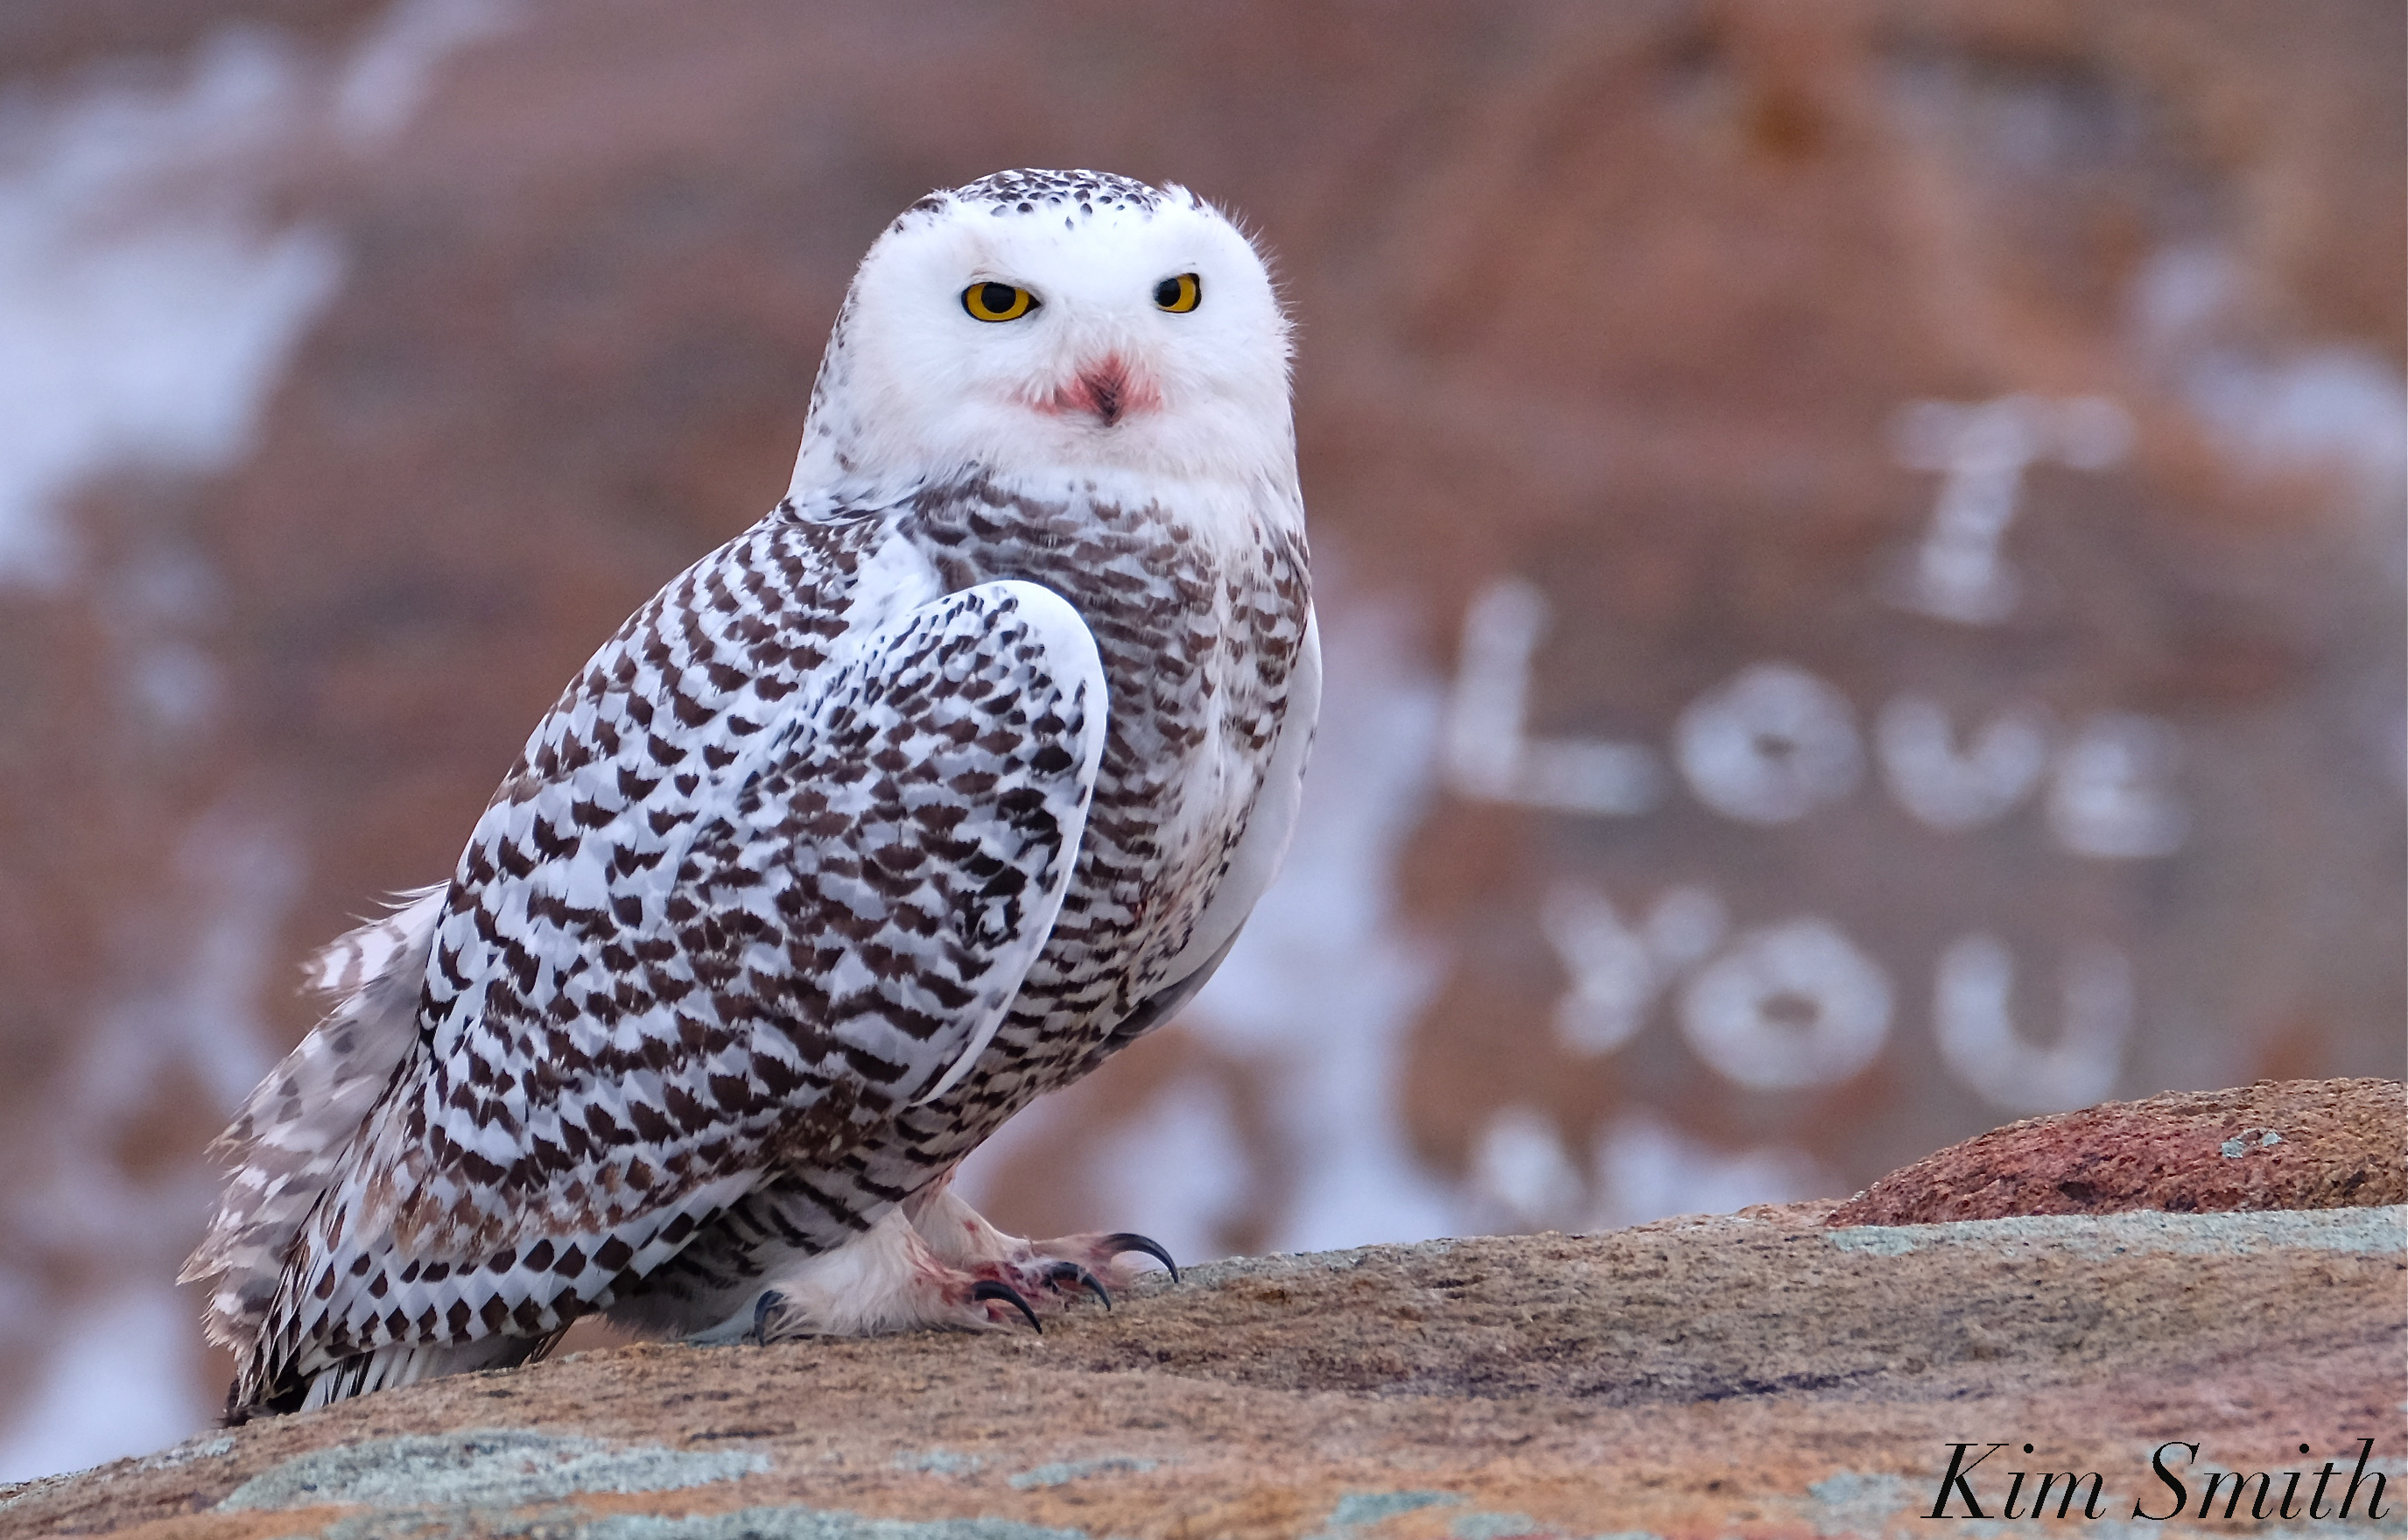 HOW TO TELL THE DIFFERENCE BETWEEN MALE AND FEMALE SNOWY OWLS ...